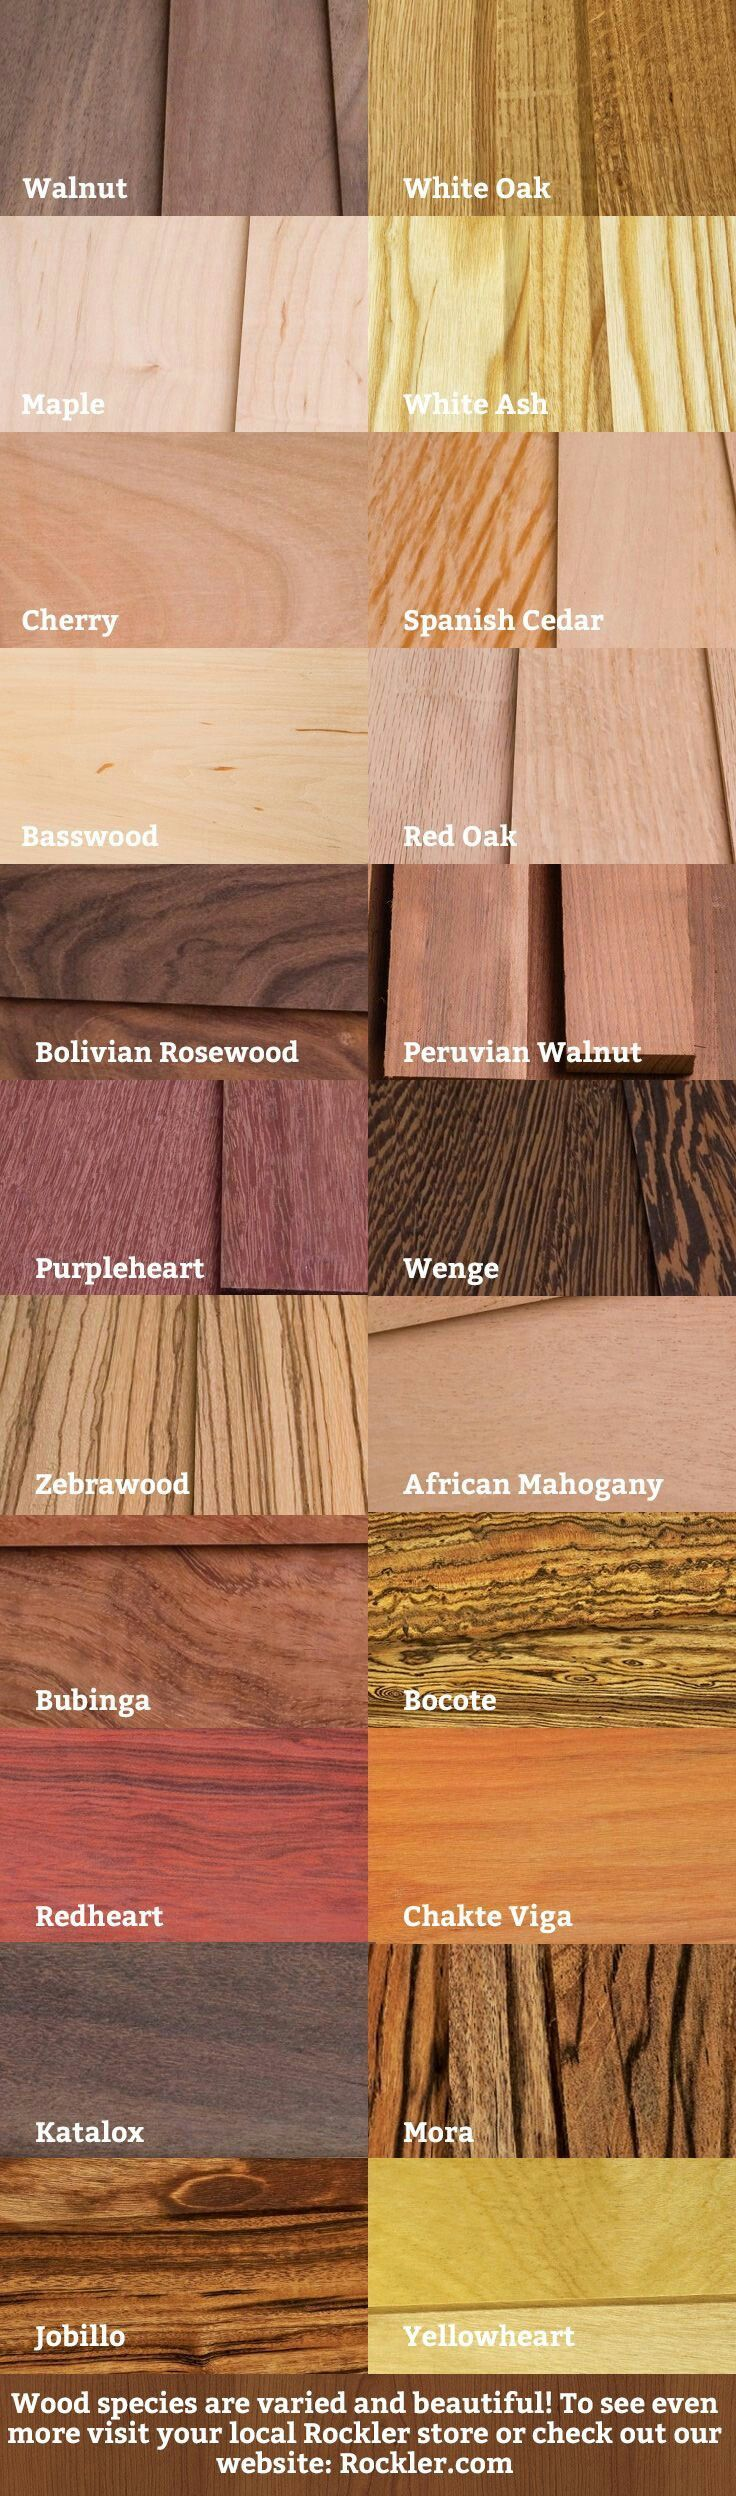 These Examples Of Wood Species Will Come In Handy Woodworking Plans Storage Woodworking Projects Wood Diy